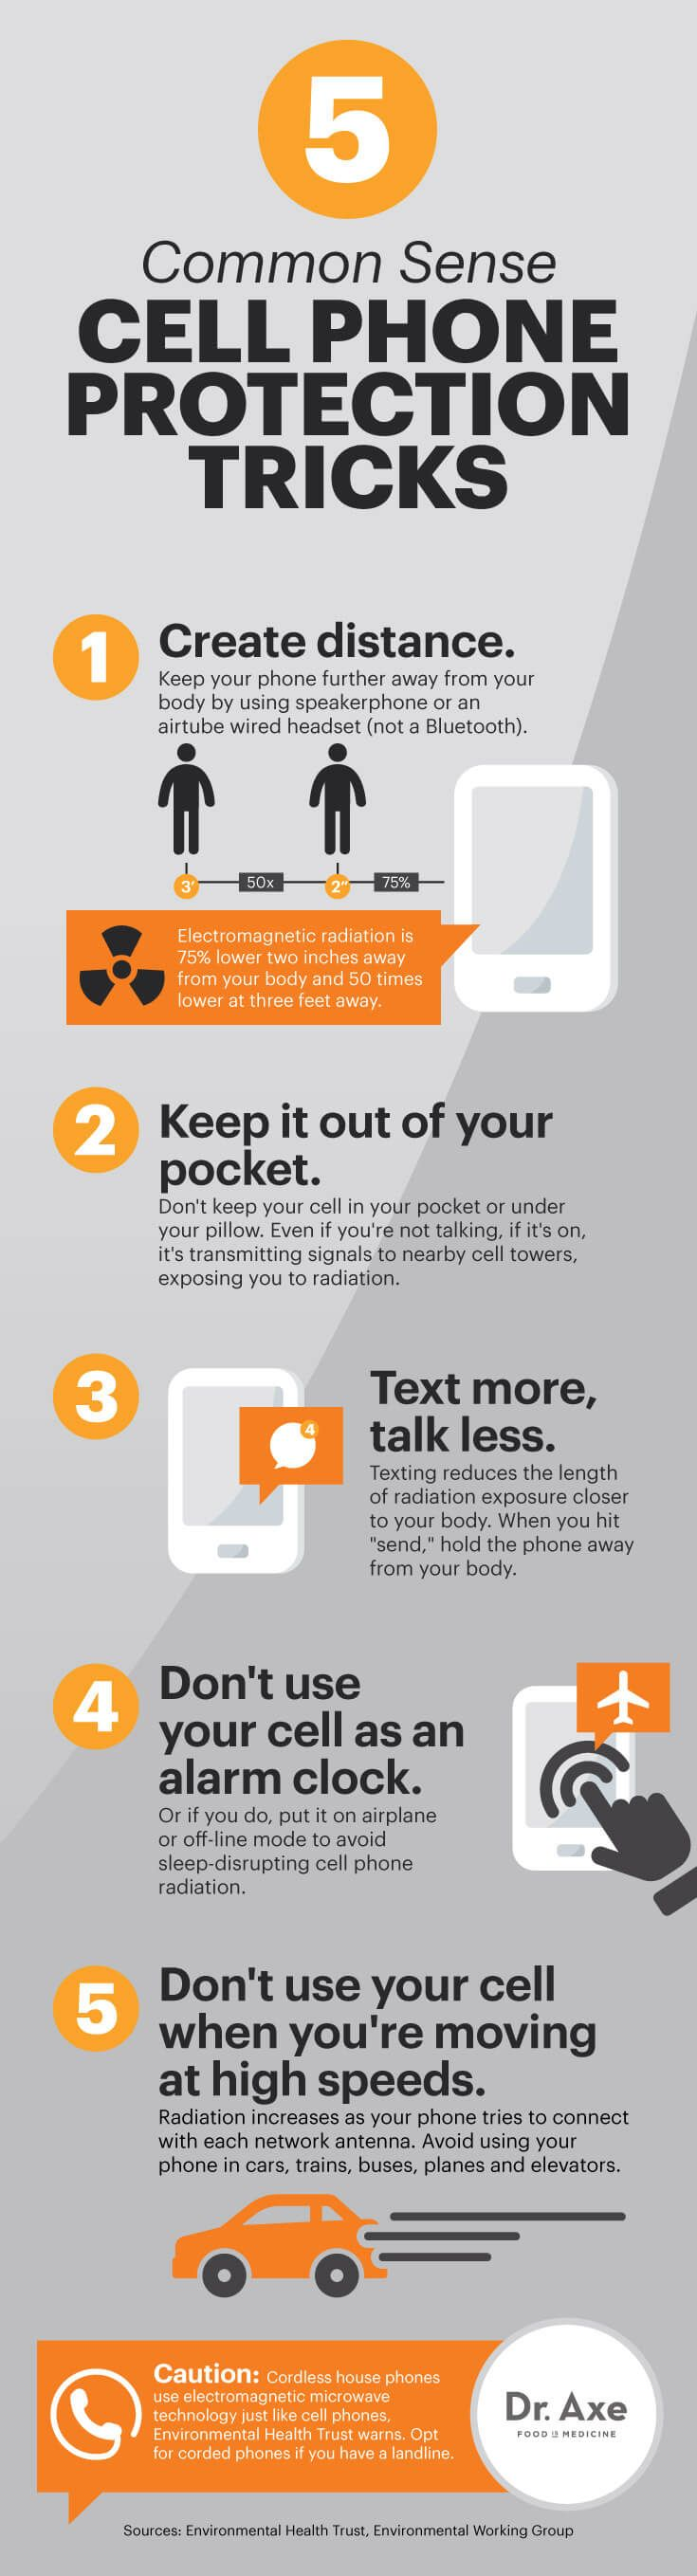 Do Cell Phones Cause Cancer? What You Need to Know